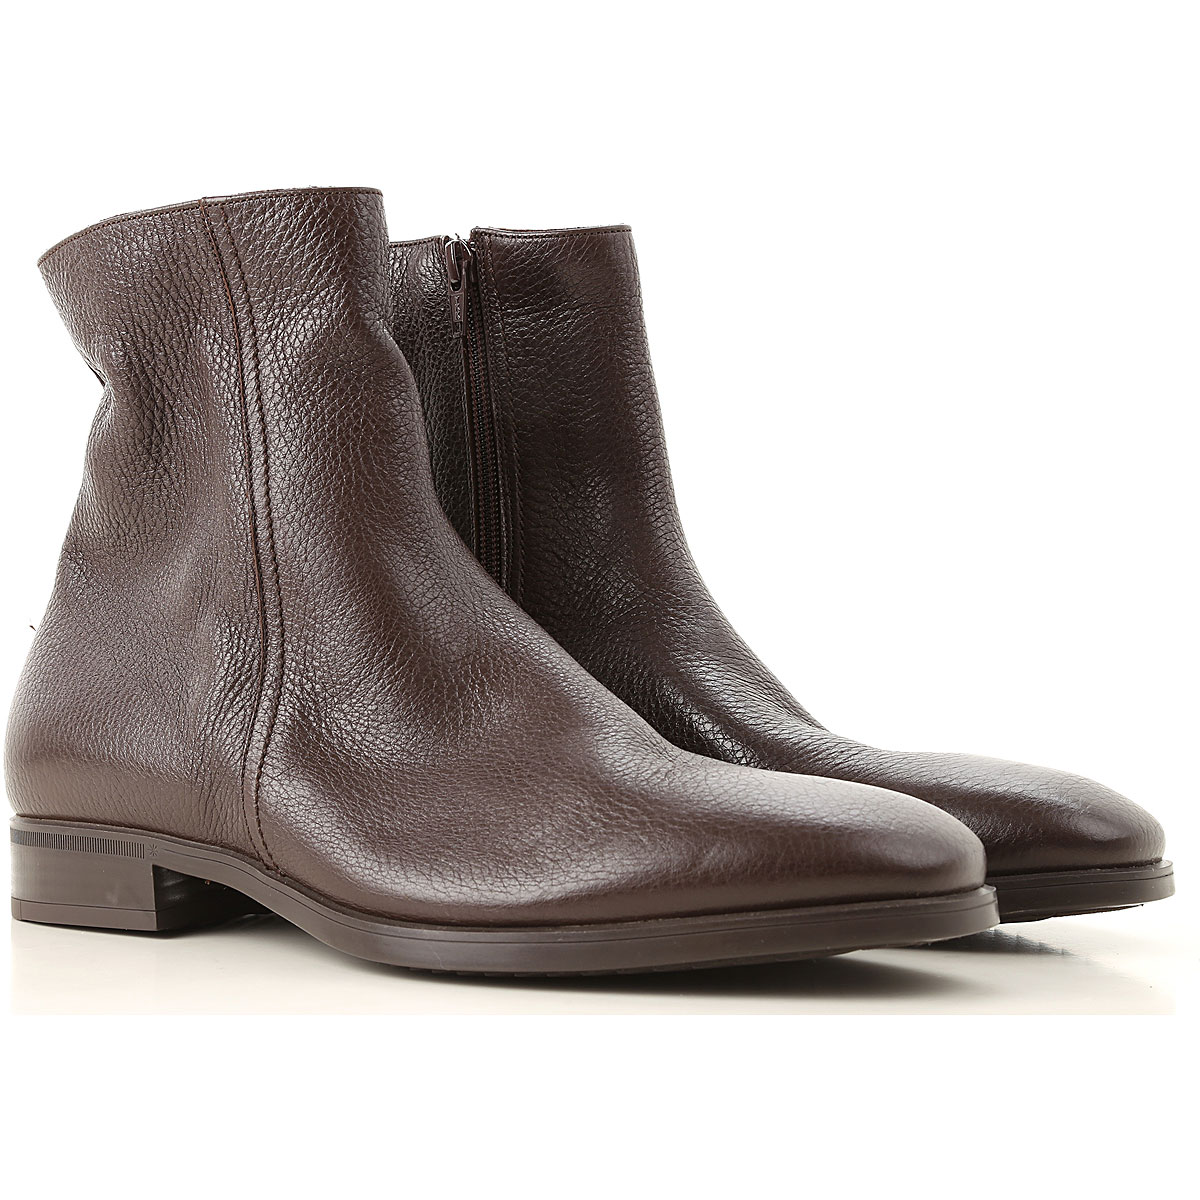 Image of Moreschi Boots for Men, Booties, Dark Brown, Leather, 2017, 10 10.5 11 11.5 12 6 7 7.5 8 8.5 9 9.5